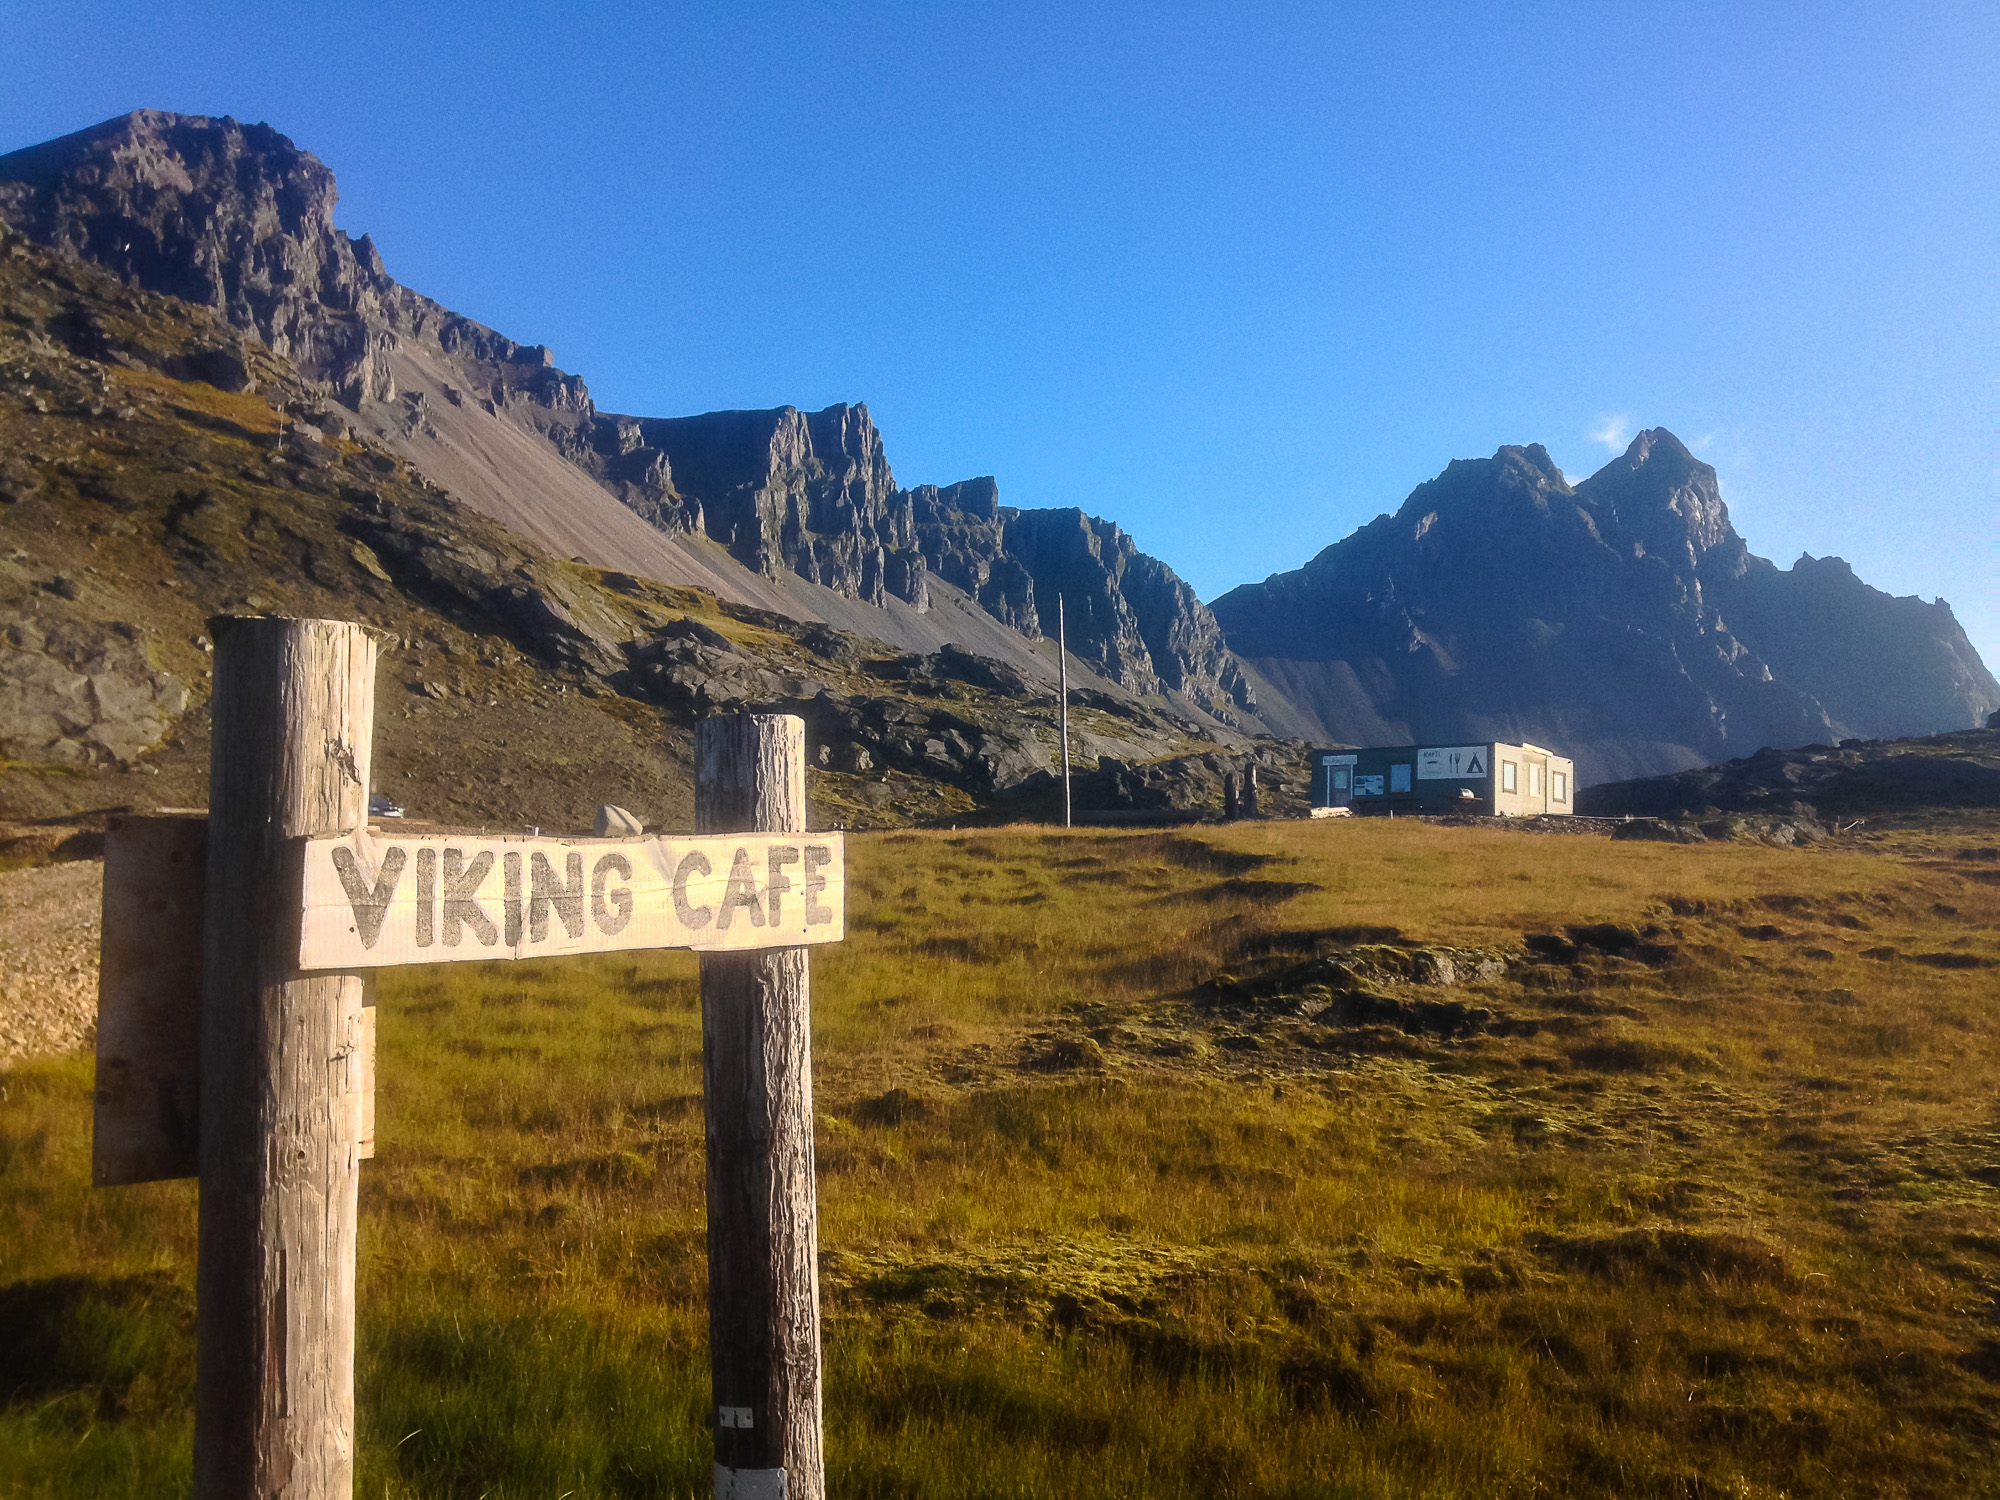 The Viking Cafe along the base of Vesturhorn Mountain